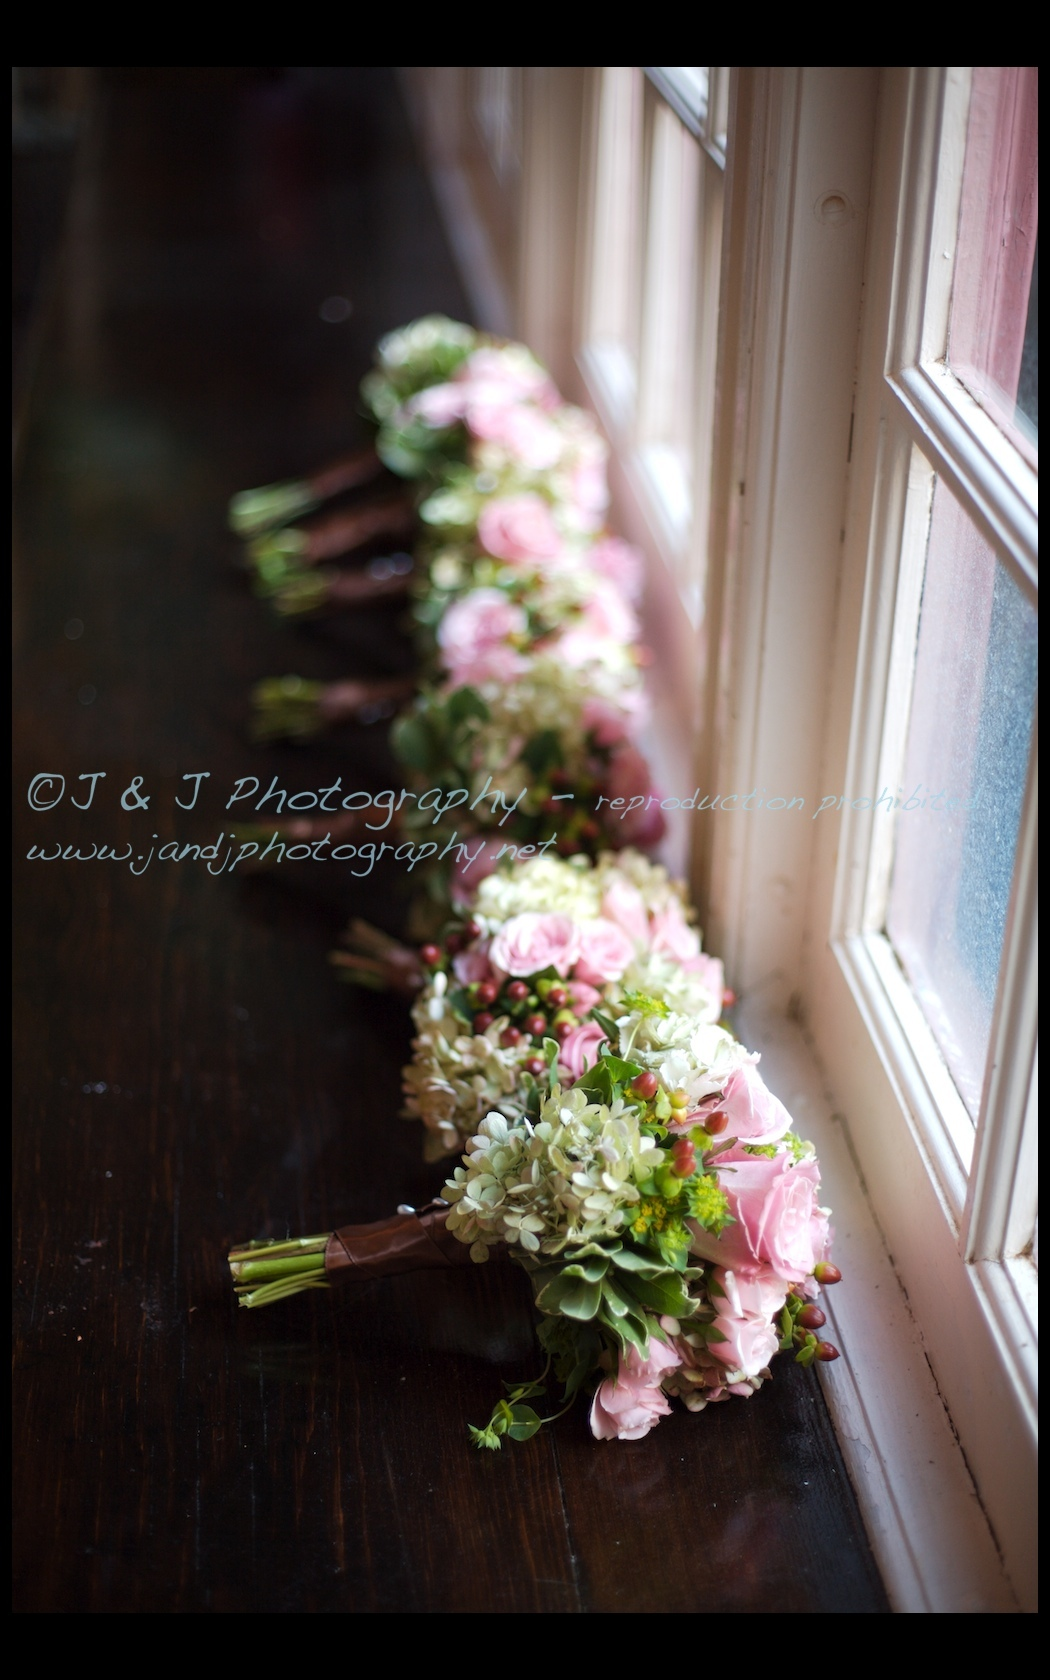 Flowers & Decor, Flowers, Bouquets, J j photography